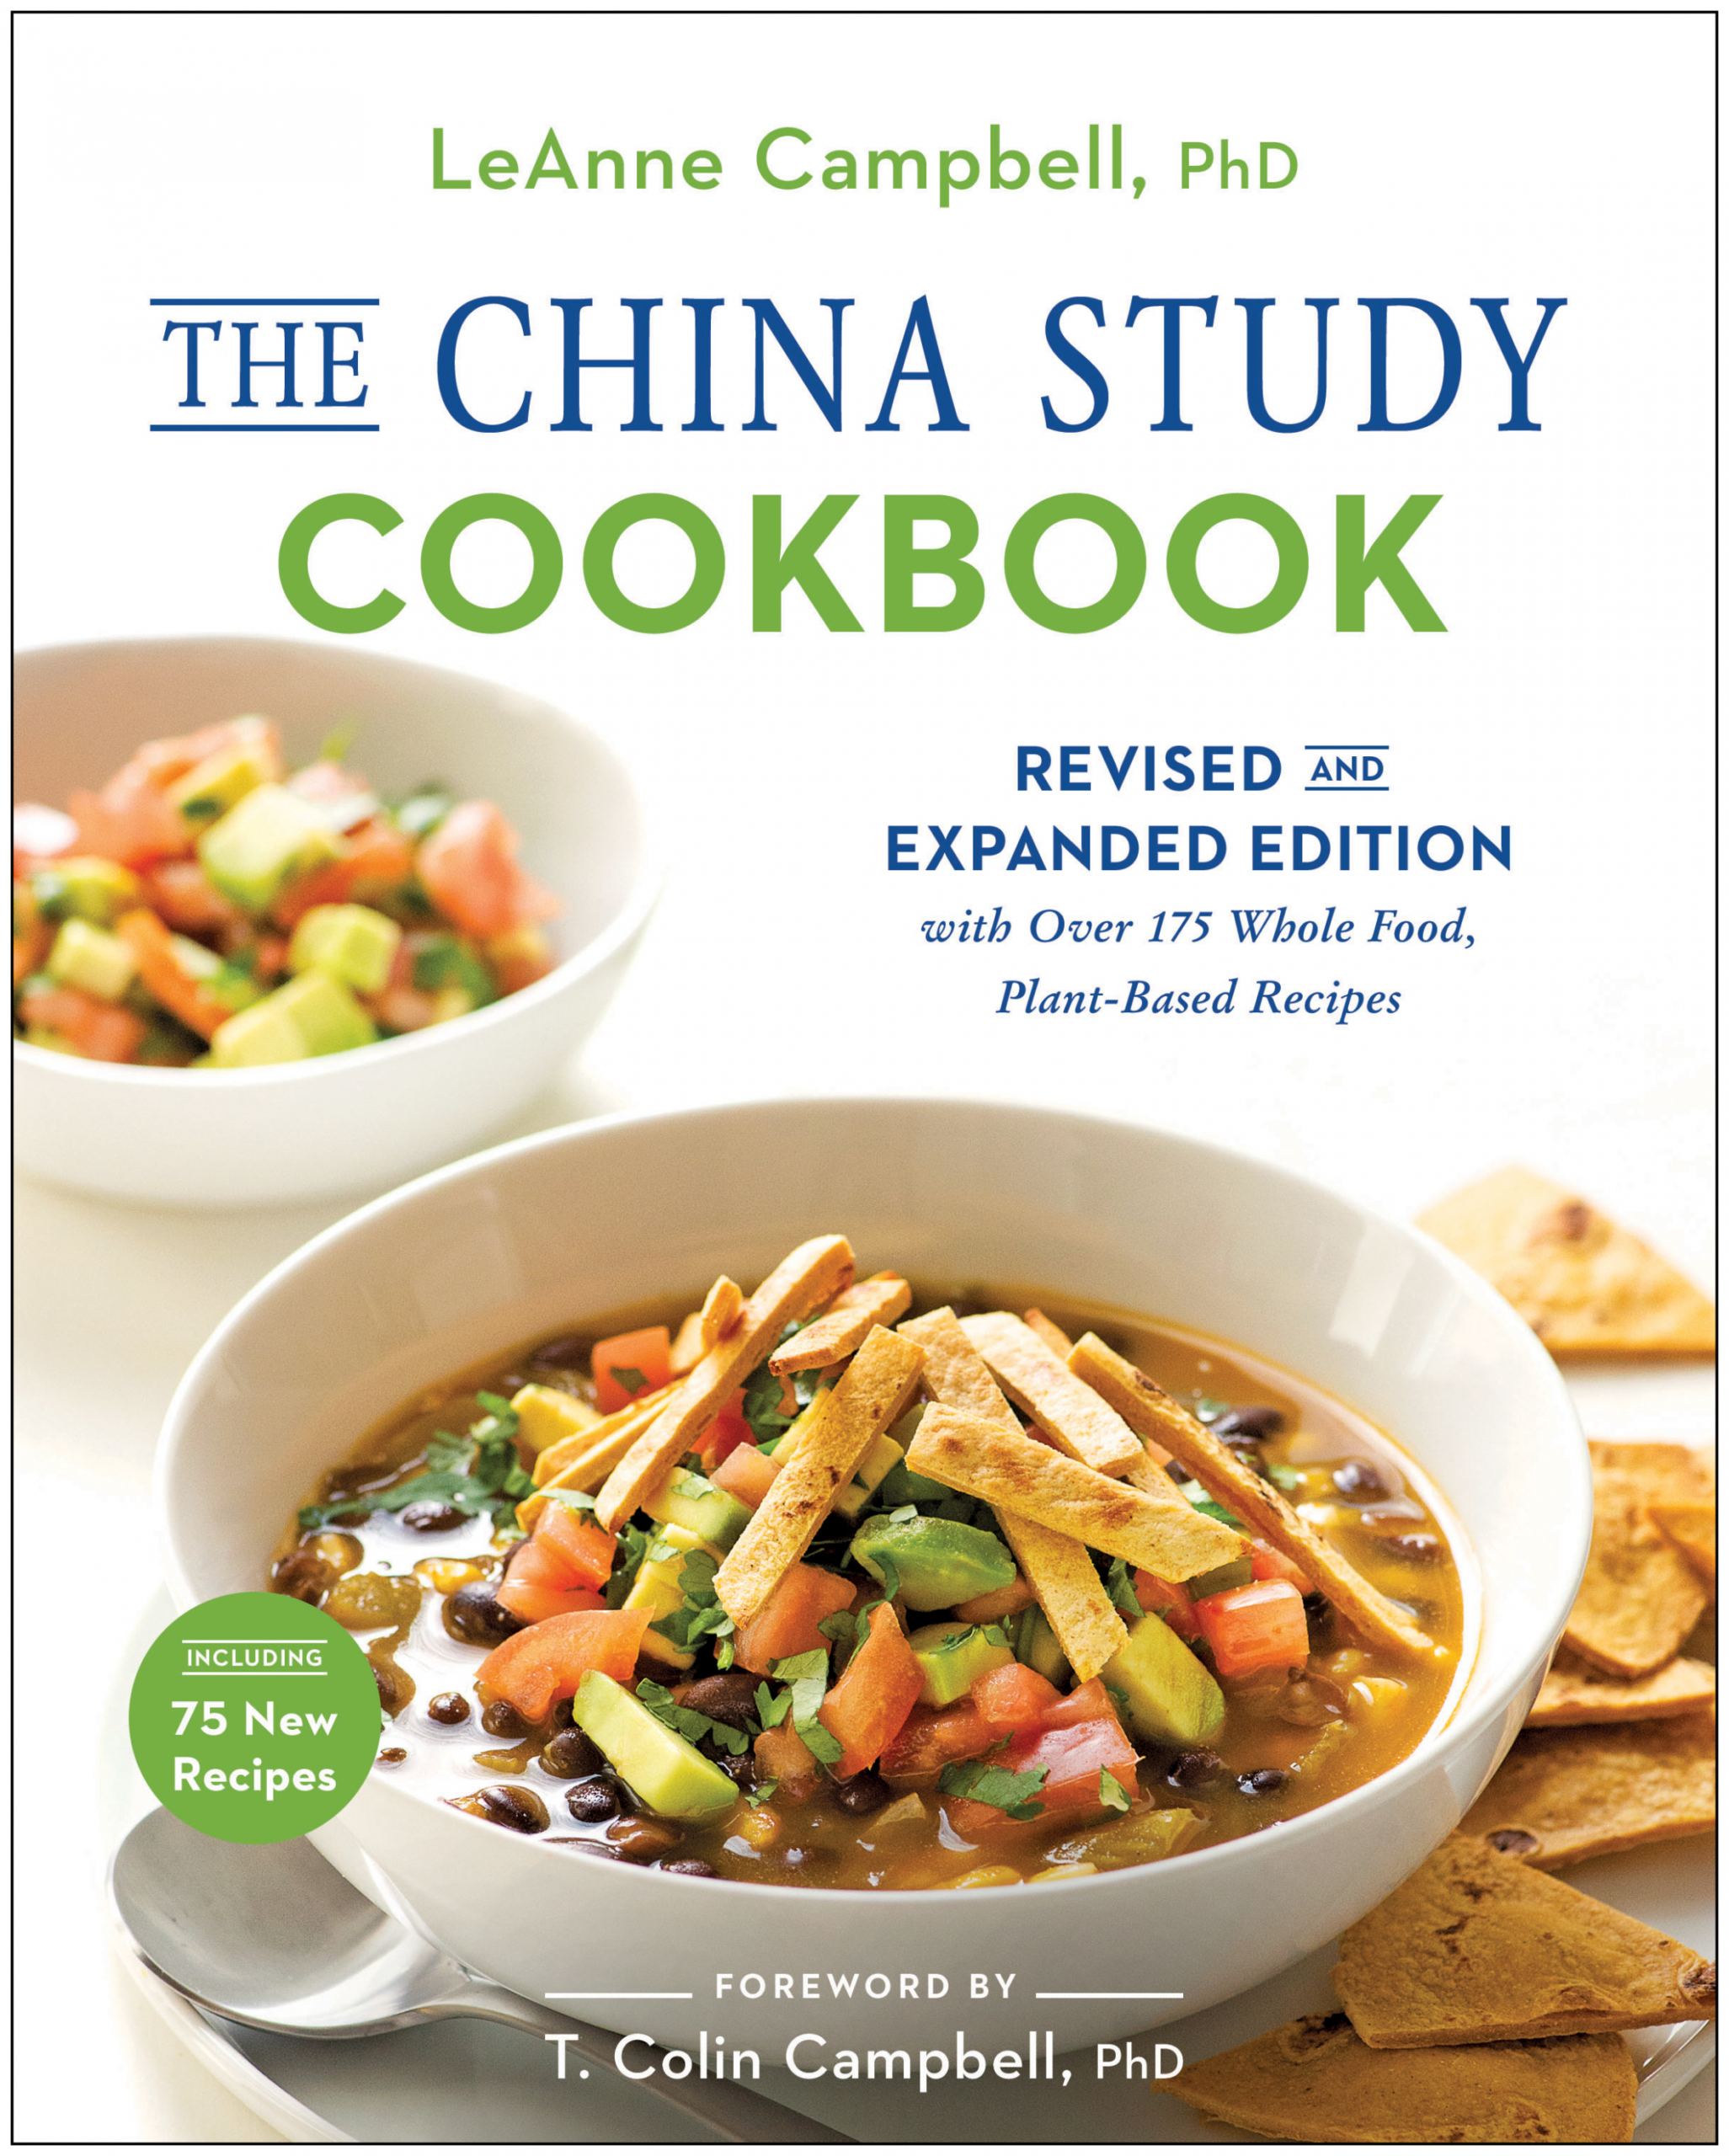 The China Study Cookbook - Recipes Plant Based Whole Food Diet